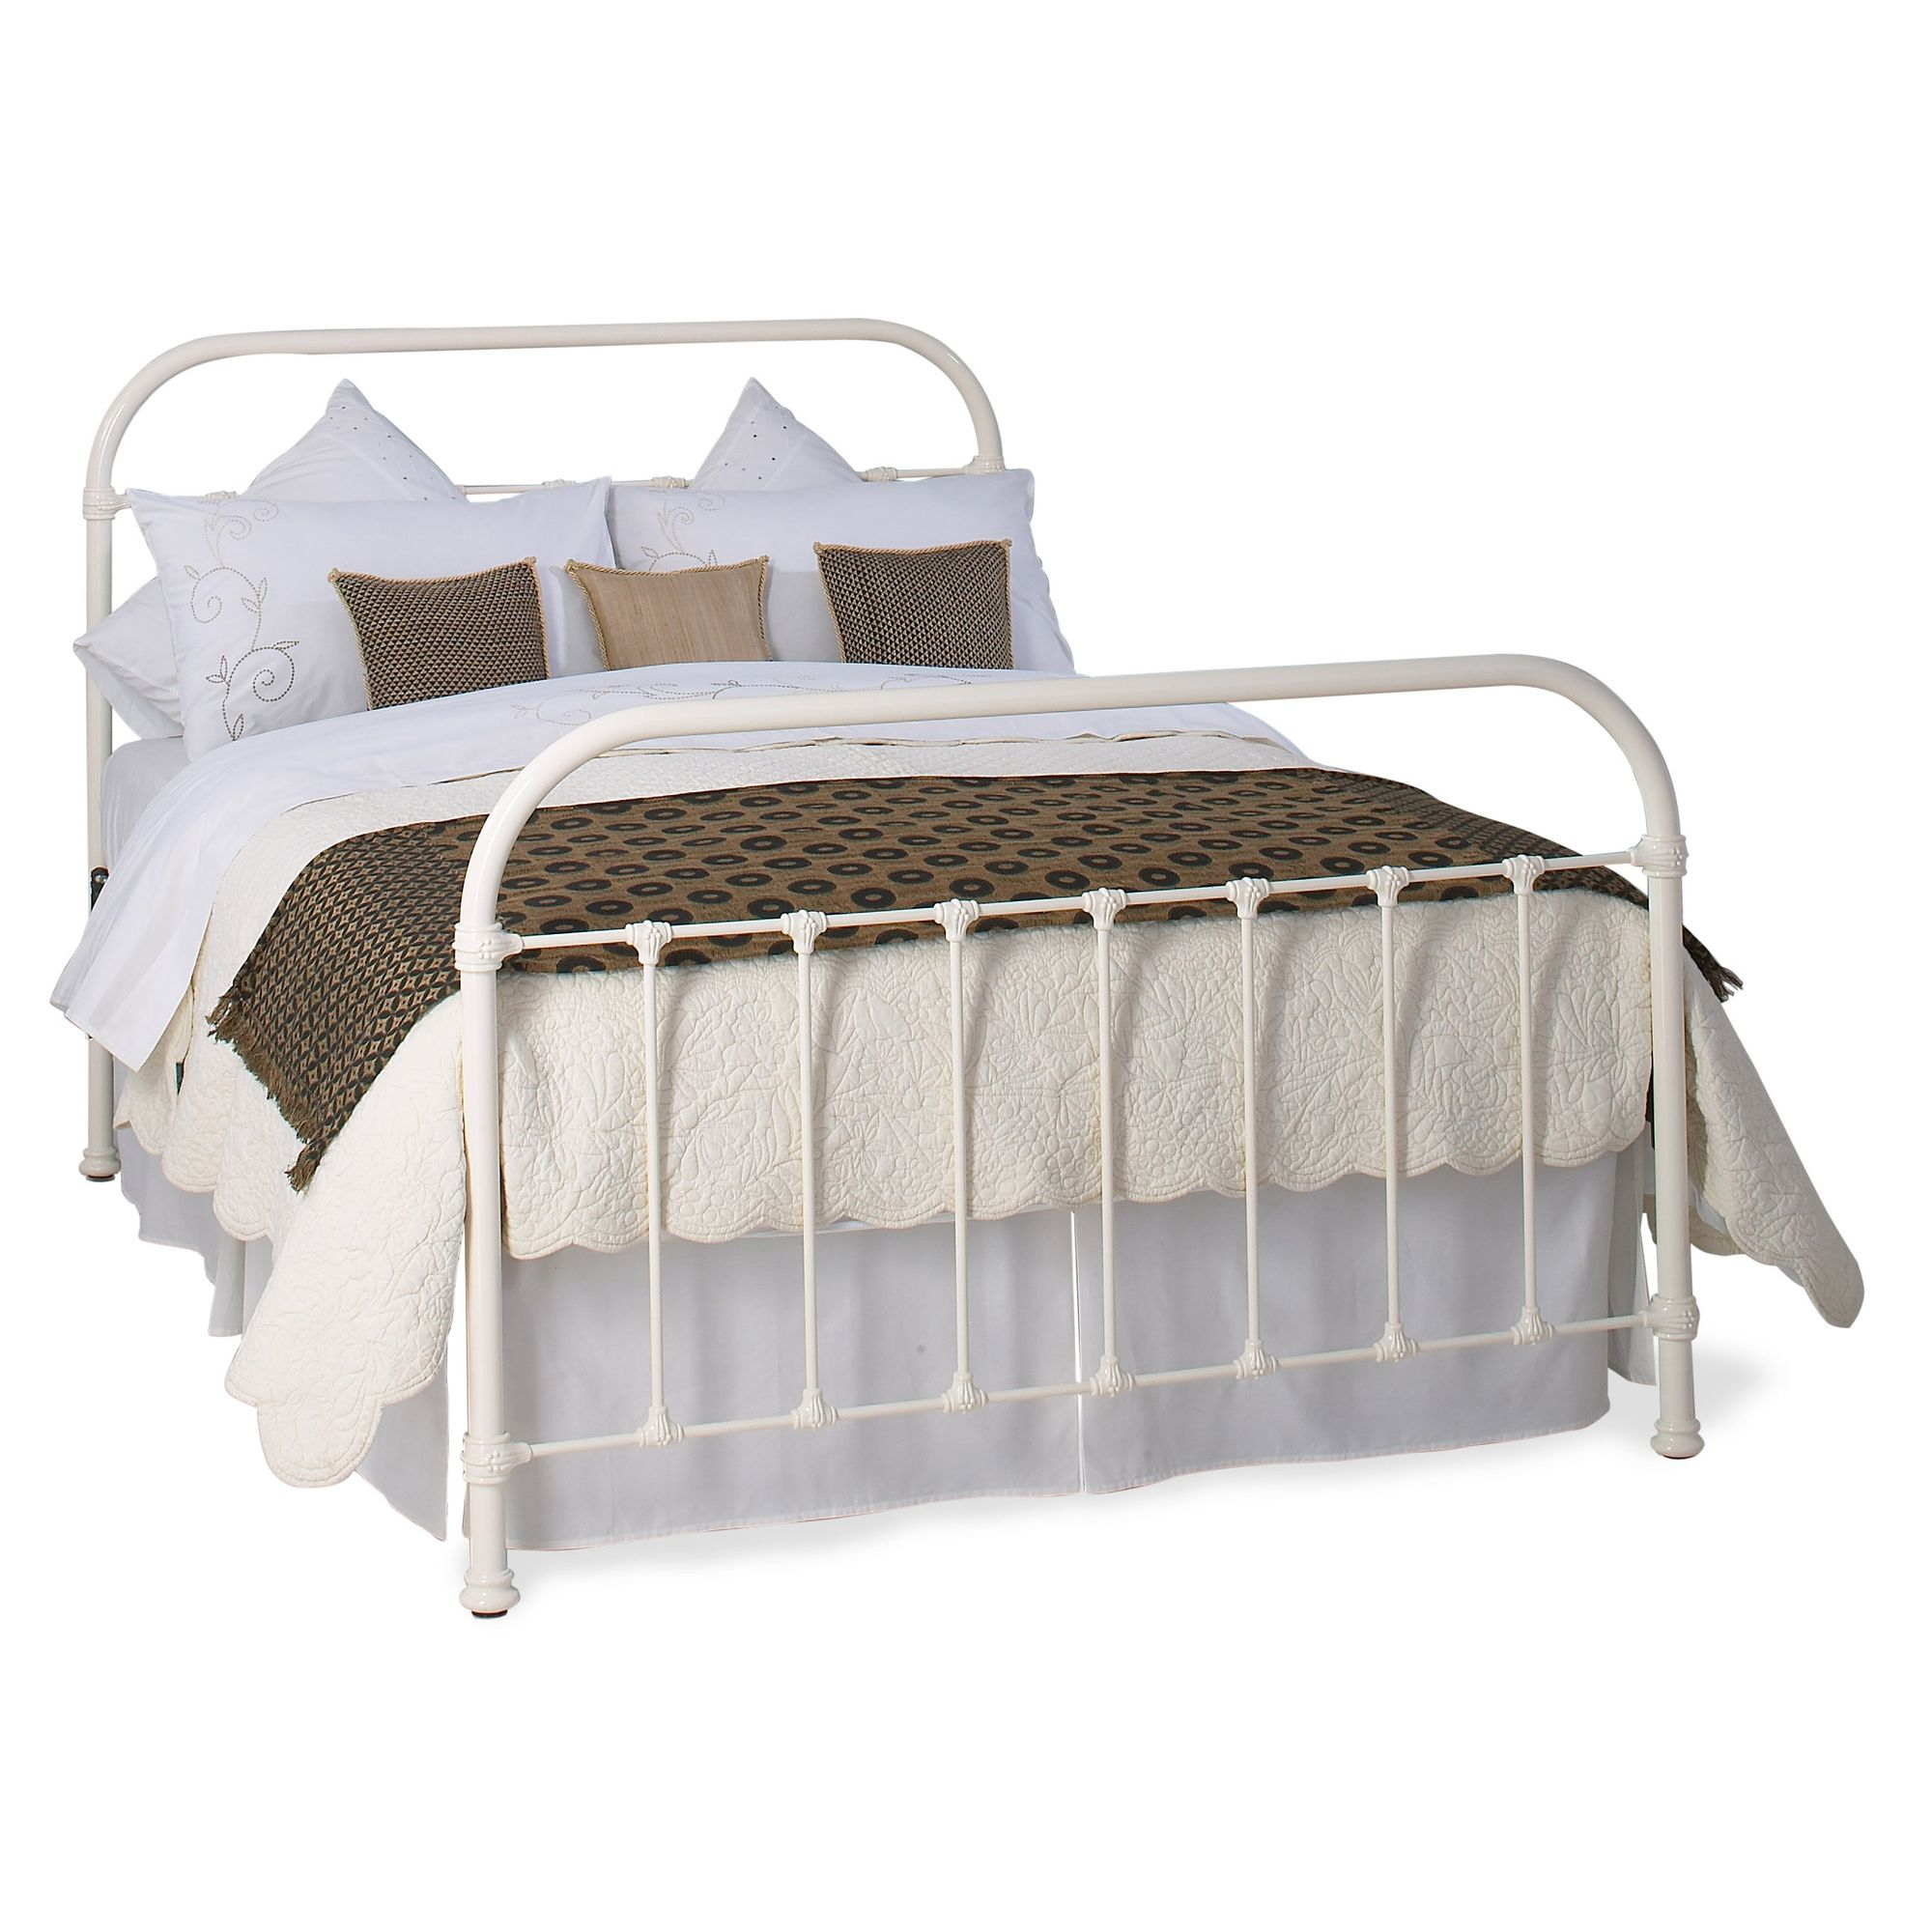 OBC Timolin Bed Frame - Double - Glossy Ivory at Tesco Direct